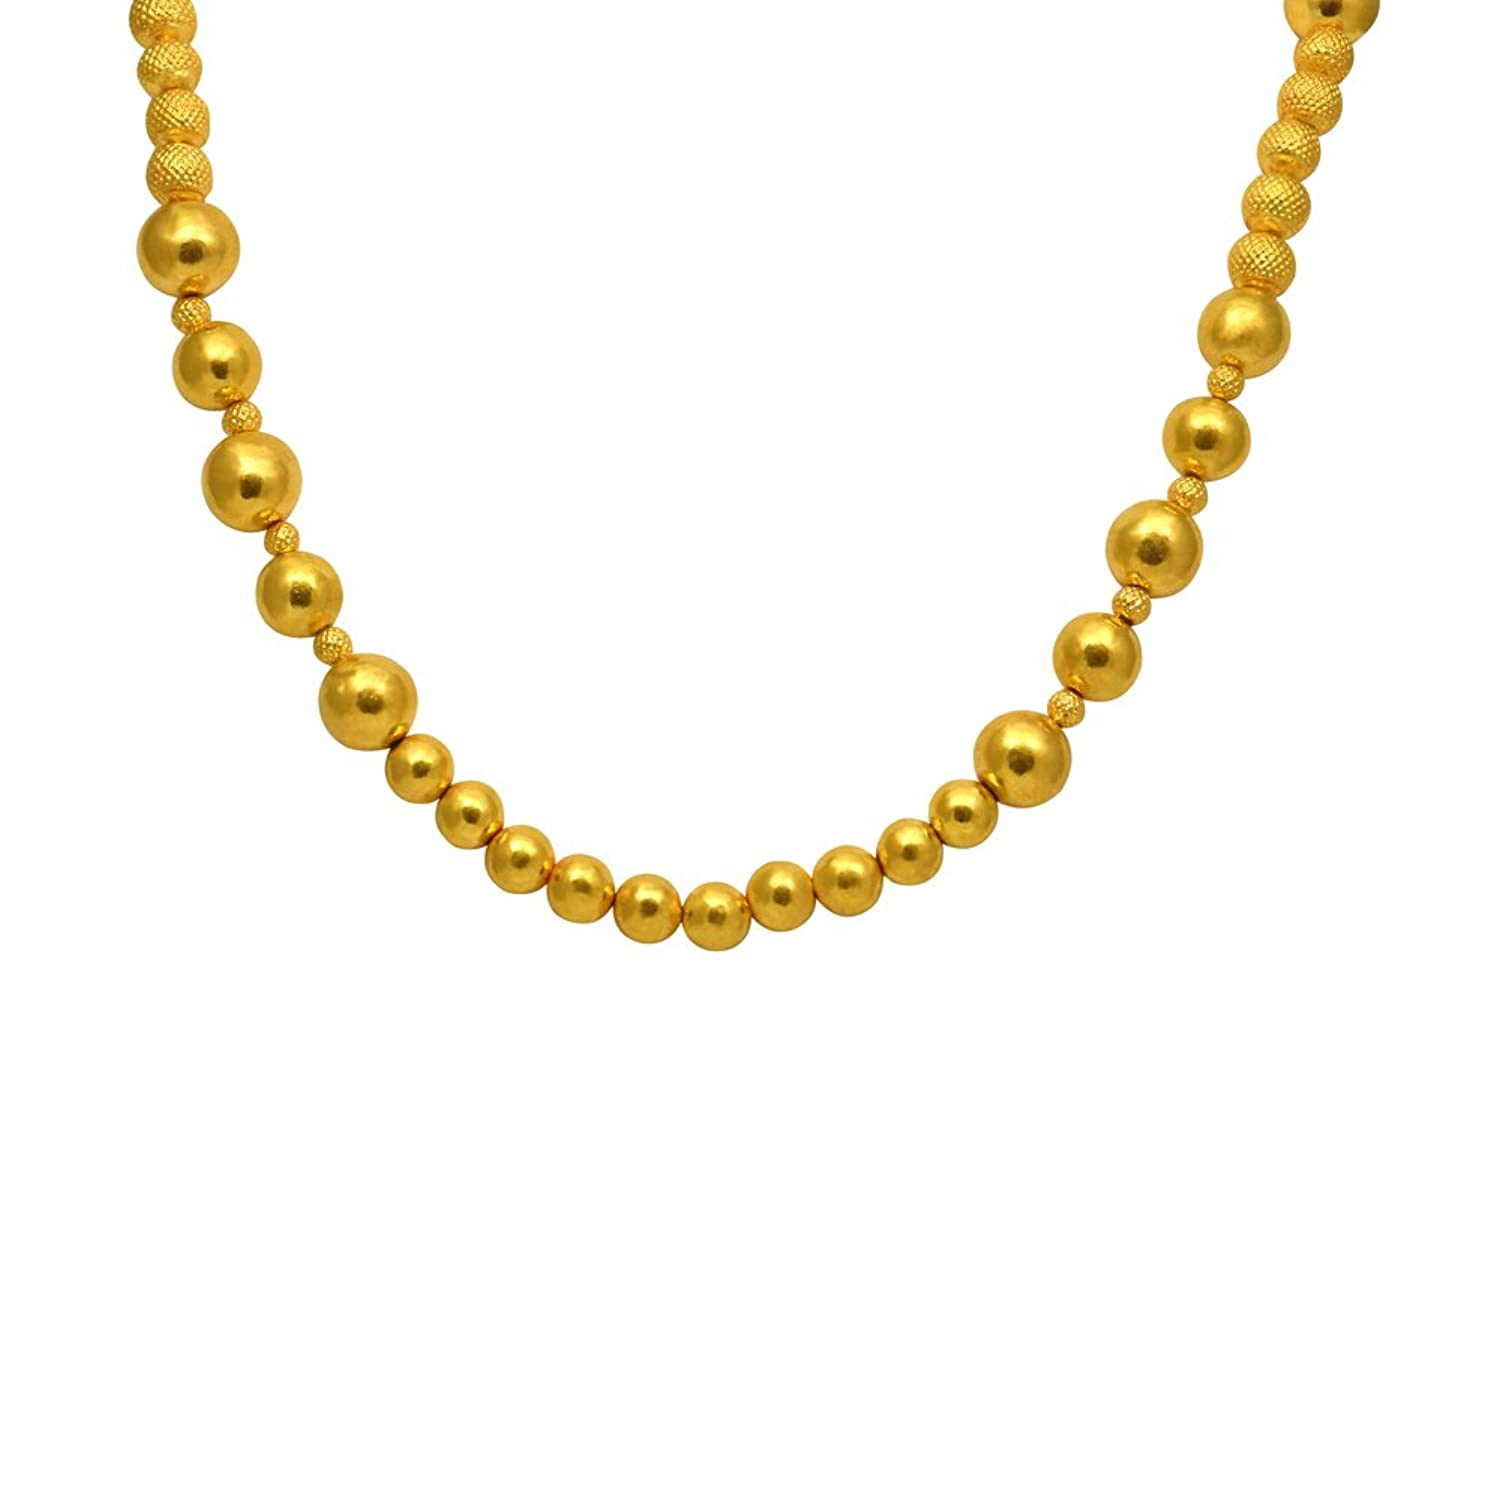 New Jewellery Design In Gold | Jewellry\'s Website